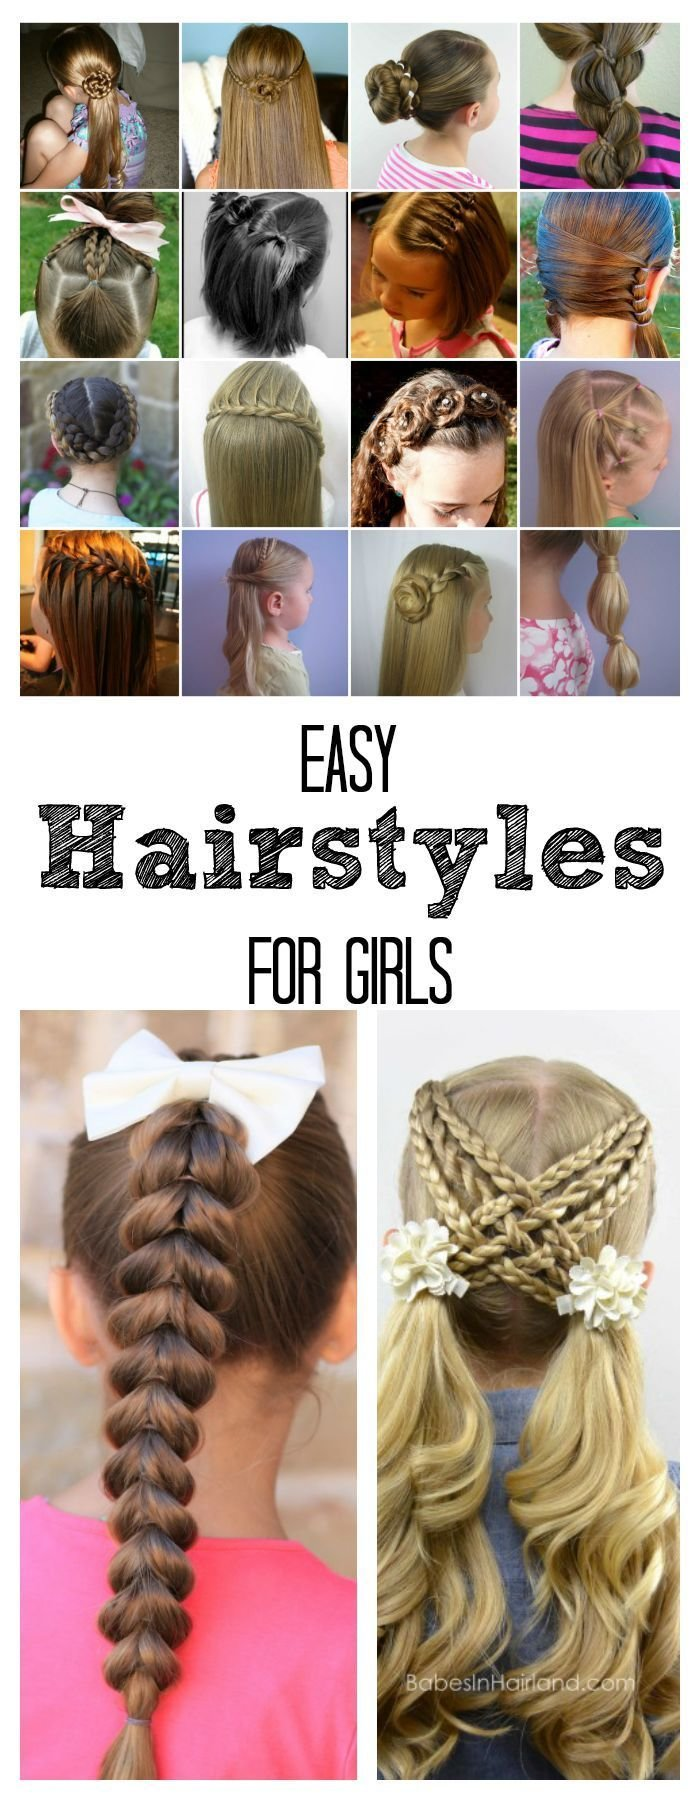 The Best Easy Hairstyles For Girls Hair Styles Hair Girls Pictures